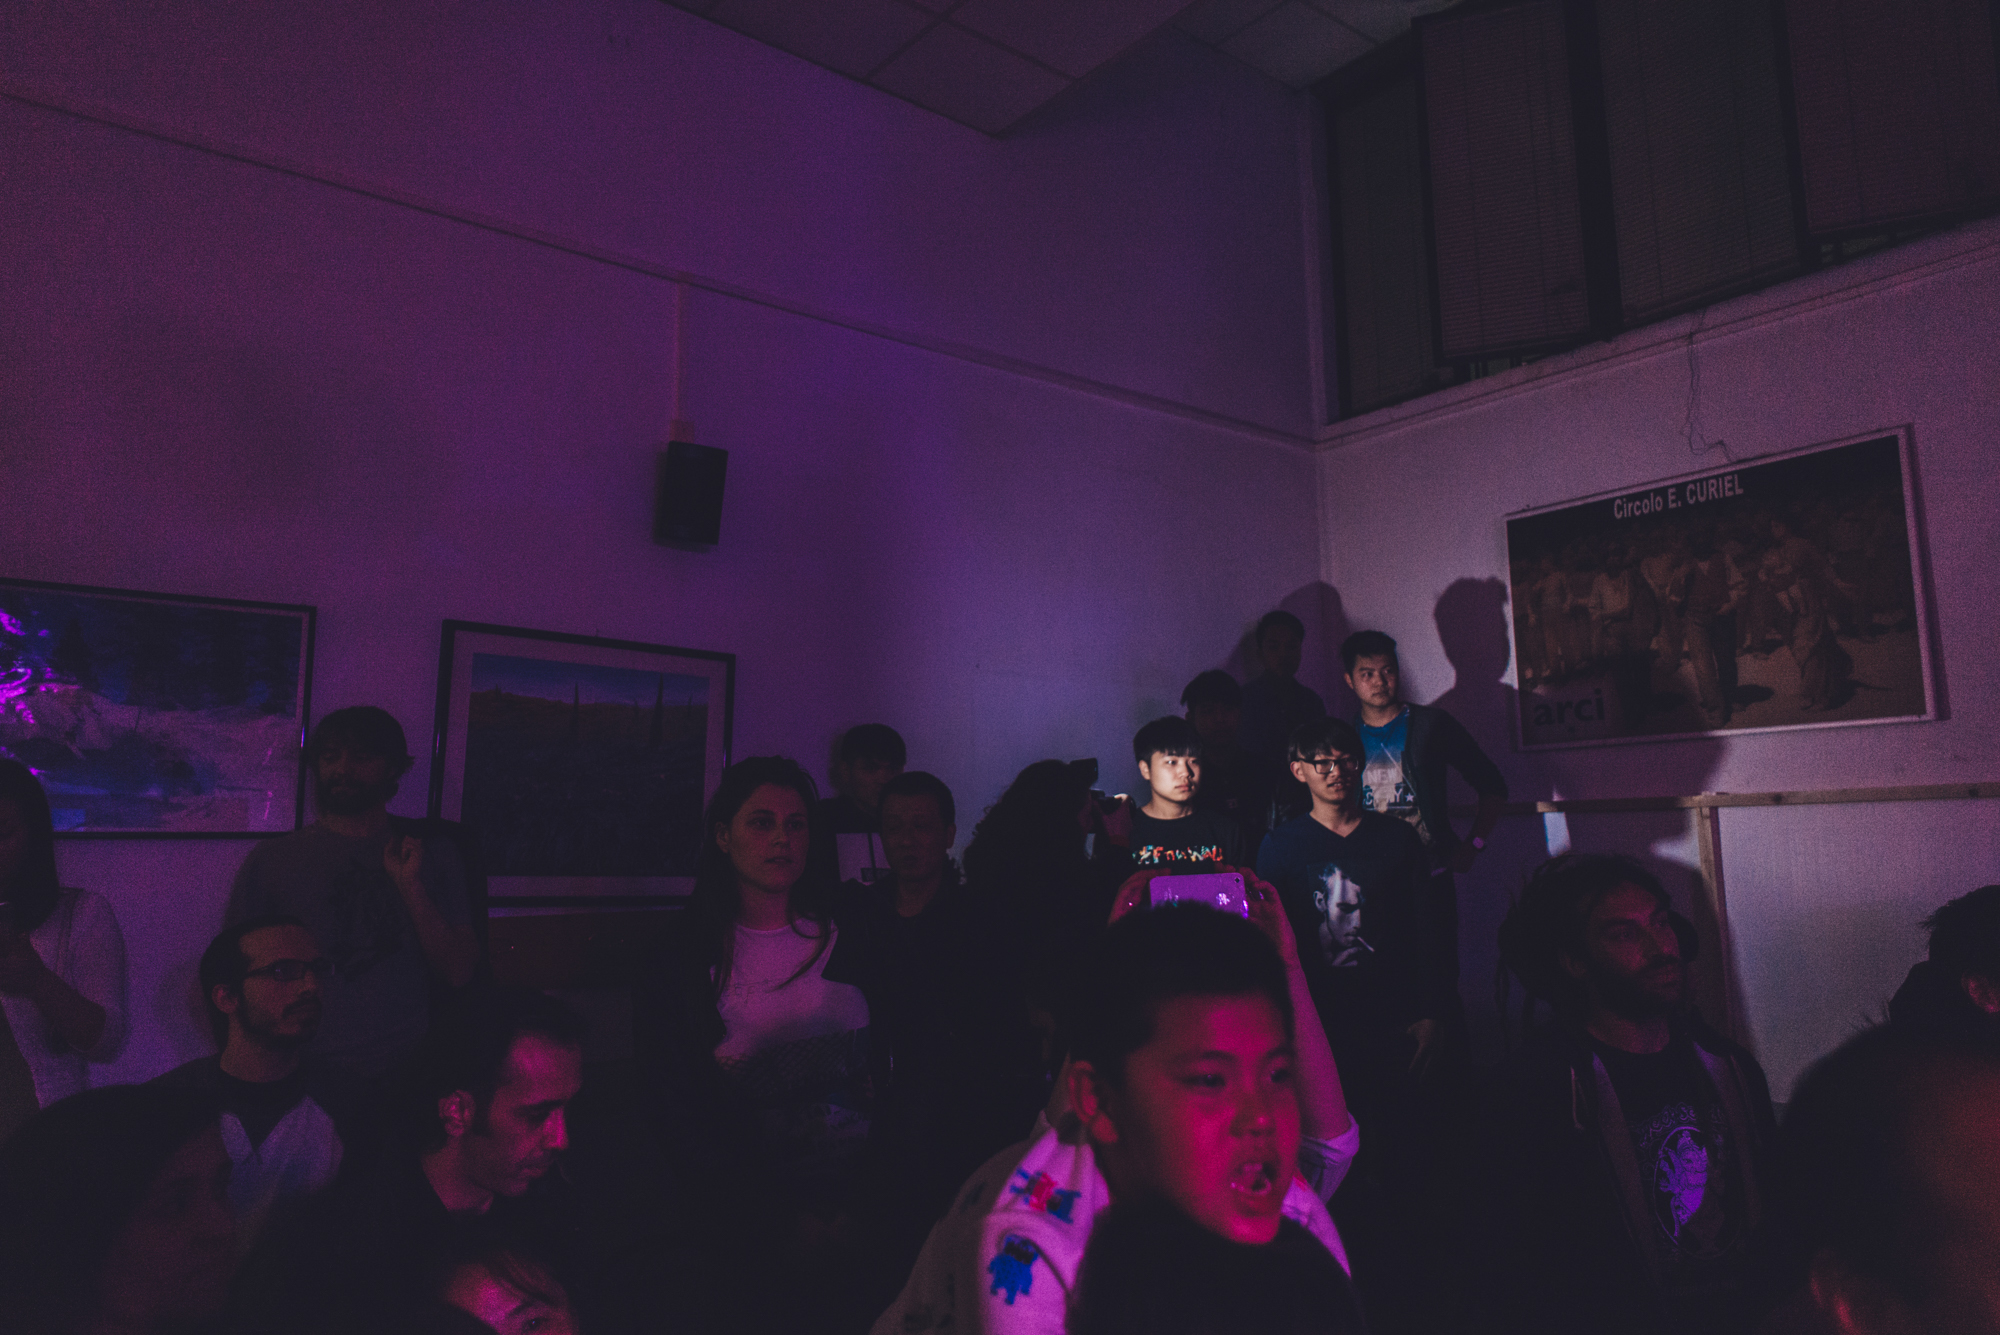 Prato, April 2016. Chinese and Italian people attending the Demerit concert in Chinatown at Circolo E.Curiel.